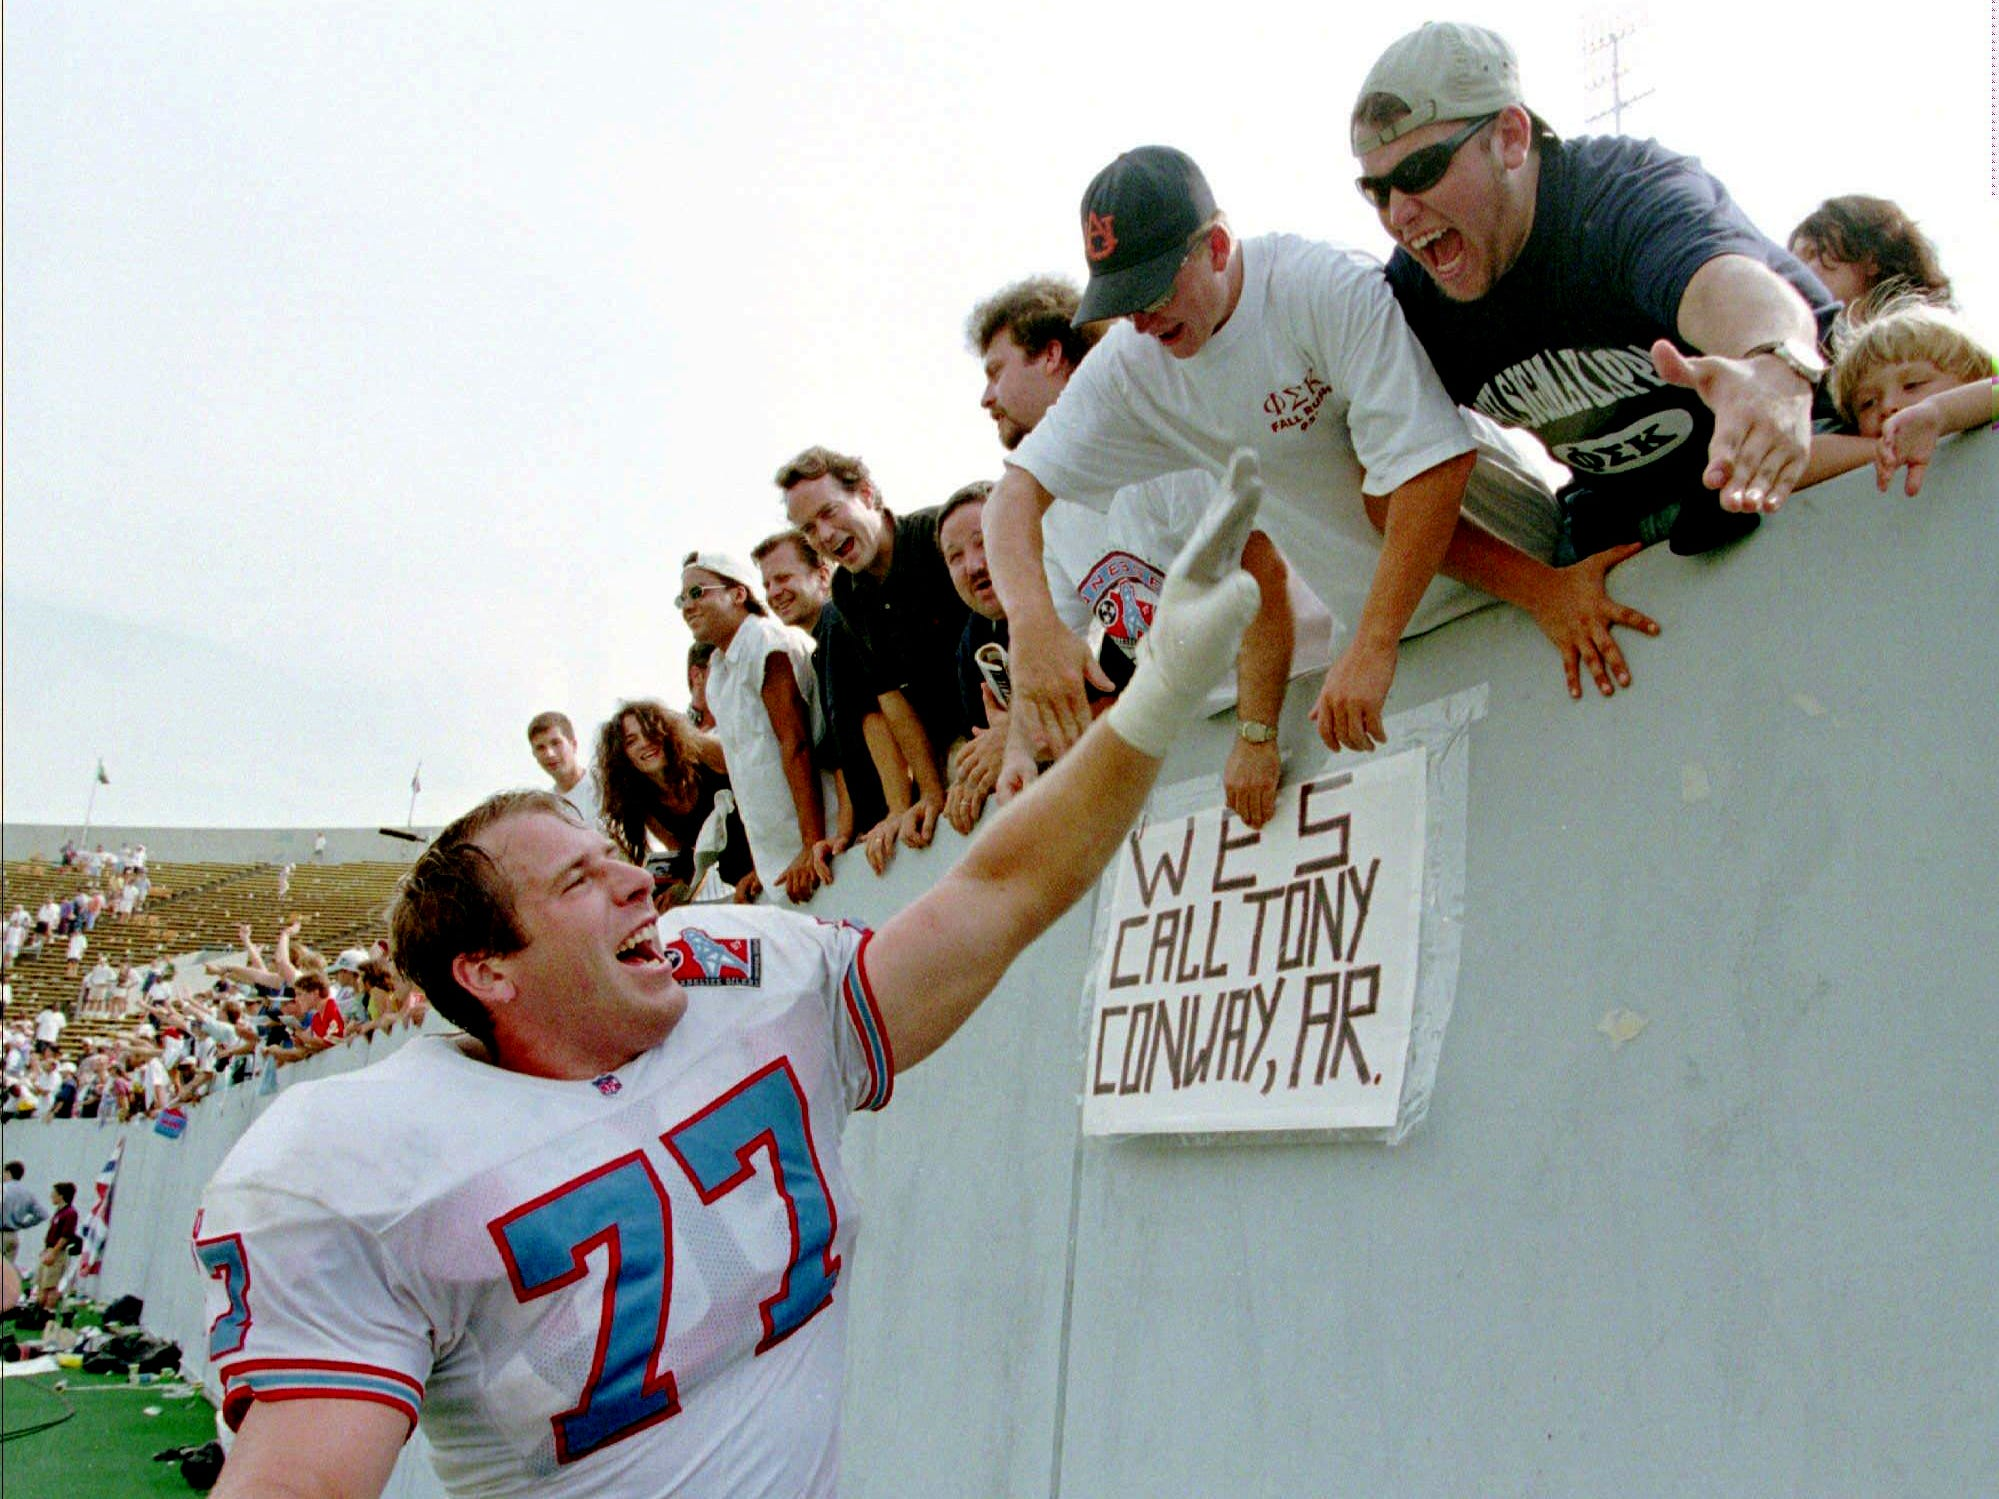 Tennessee Oilers guard Kevin Donnalley (77) celebrates with fans after the Oilers defeated the Oakland Raiders 24-21 in overtime Aug. 31, 1997 in Memphis. It was the first regular-season game for the Oilers since moving from Houston to Tennessee.